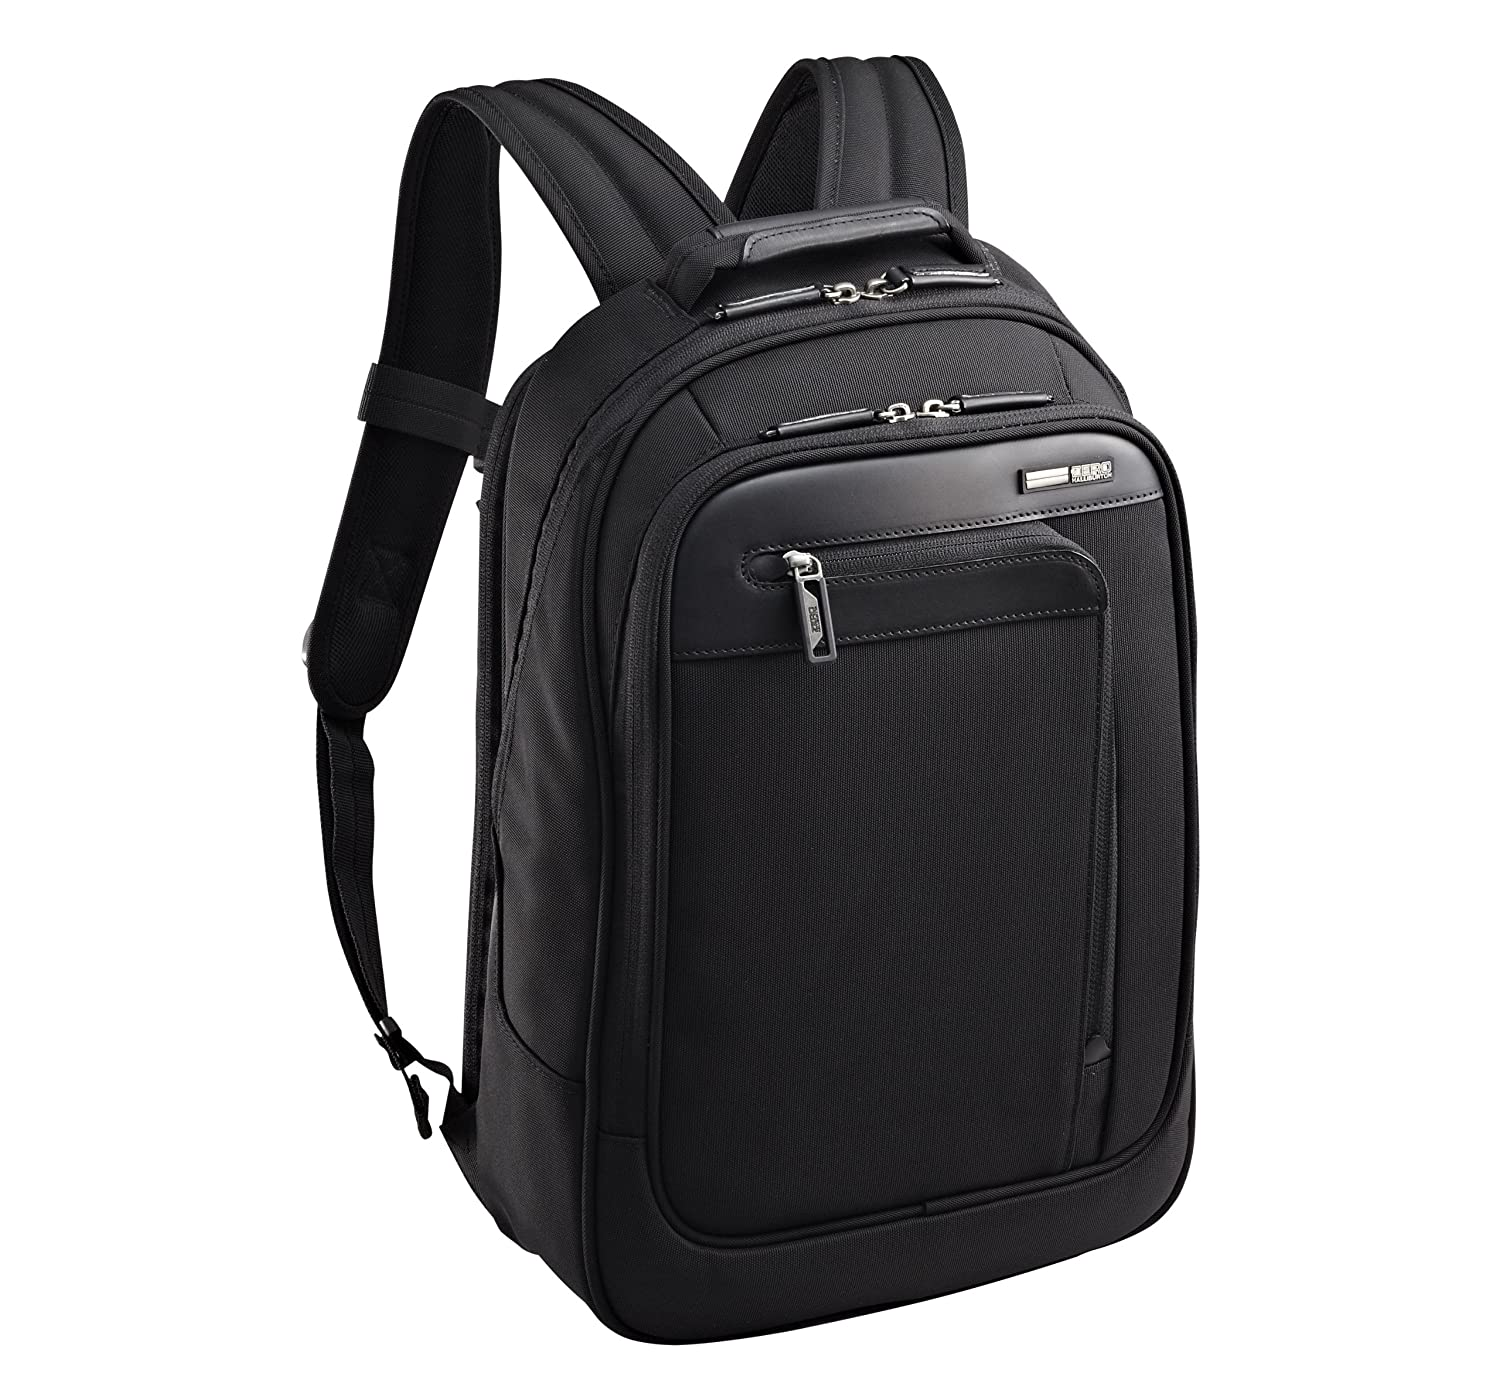 57b85a586604 Zero Halliburton Profile Business Backpack, Black, One Size 85%OFF ...